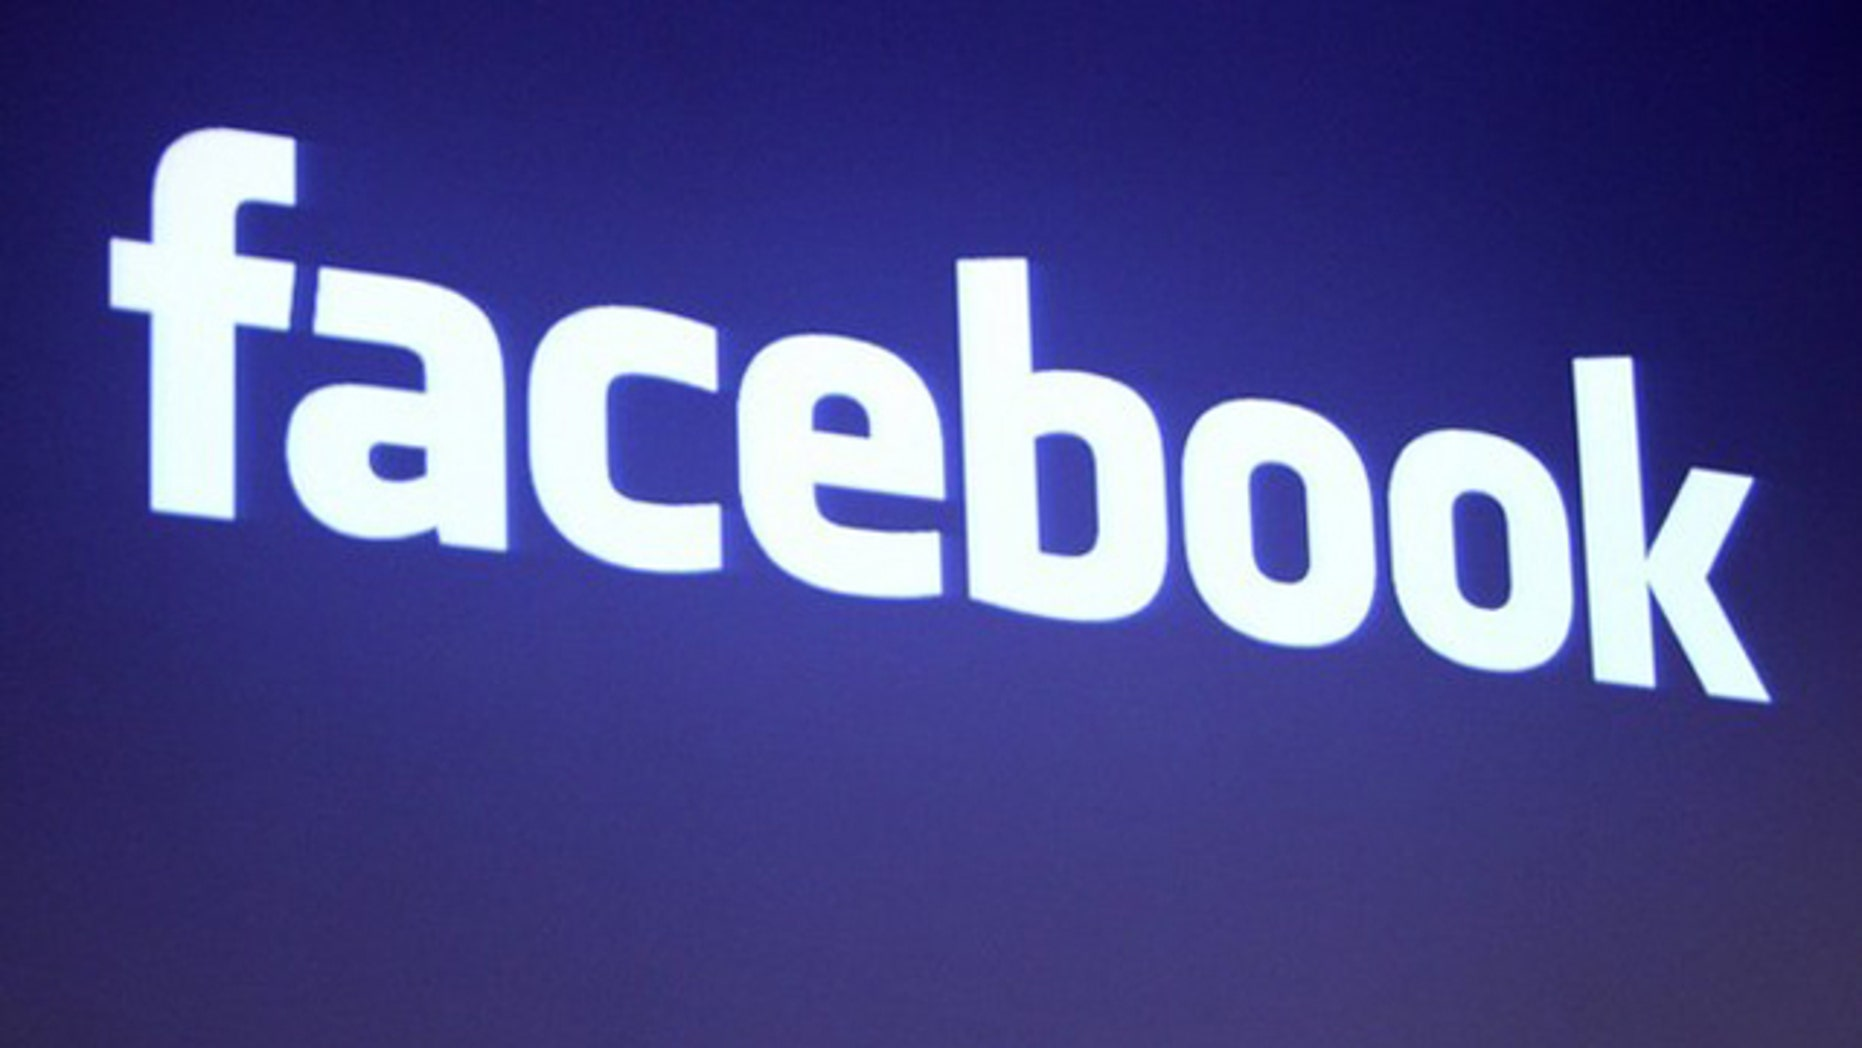 The Facebook logo is shown at Facebook headquarters in Palo Alto, California, in this May 26, 2010 file photo. (Reuters)